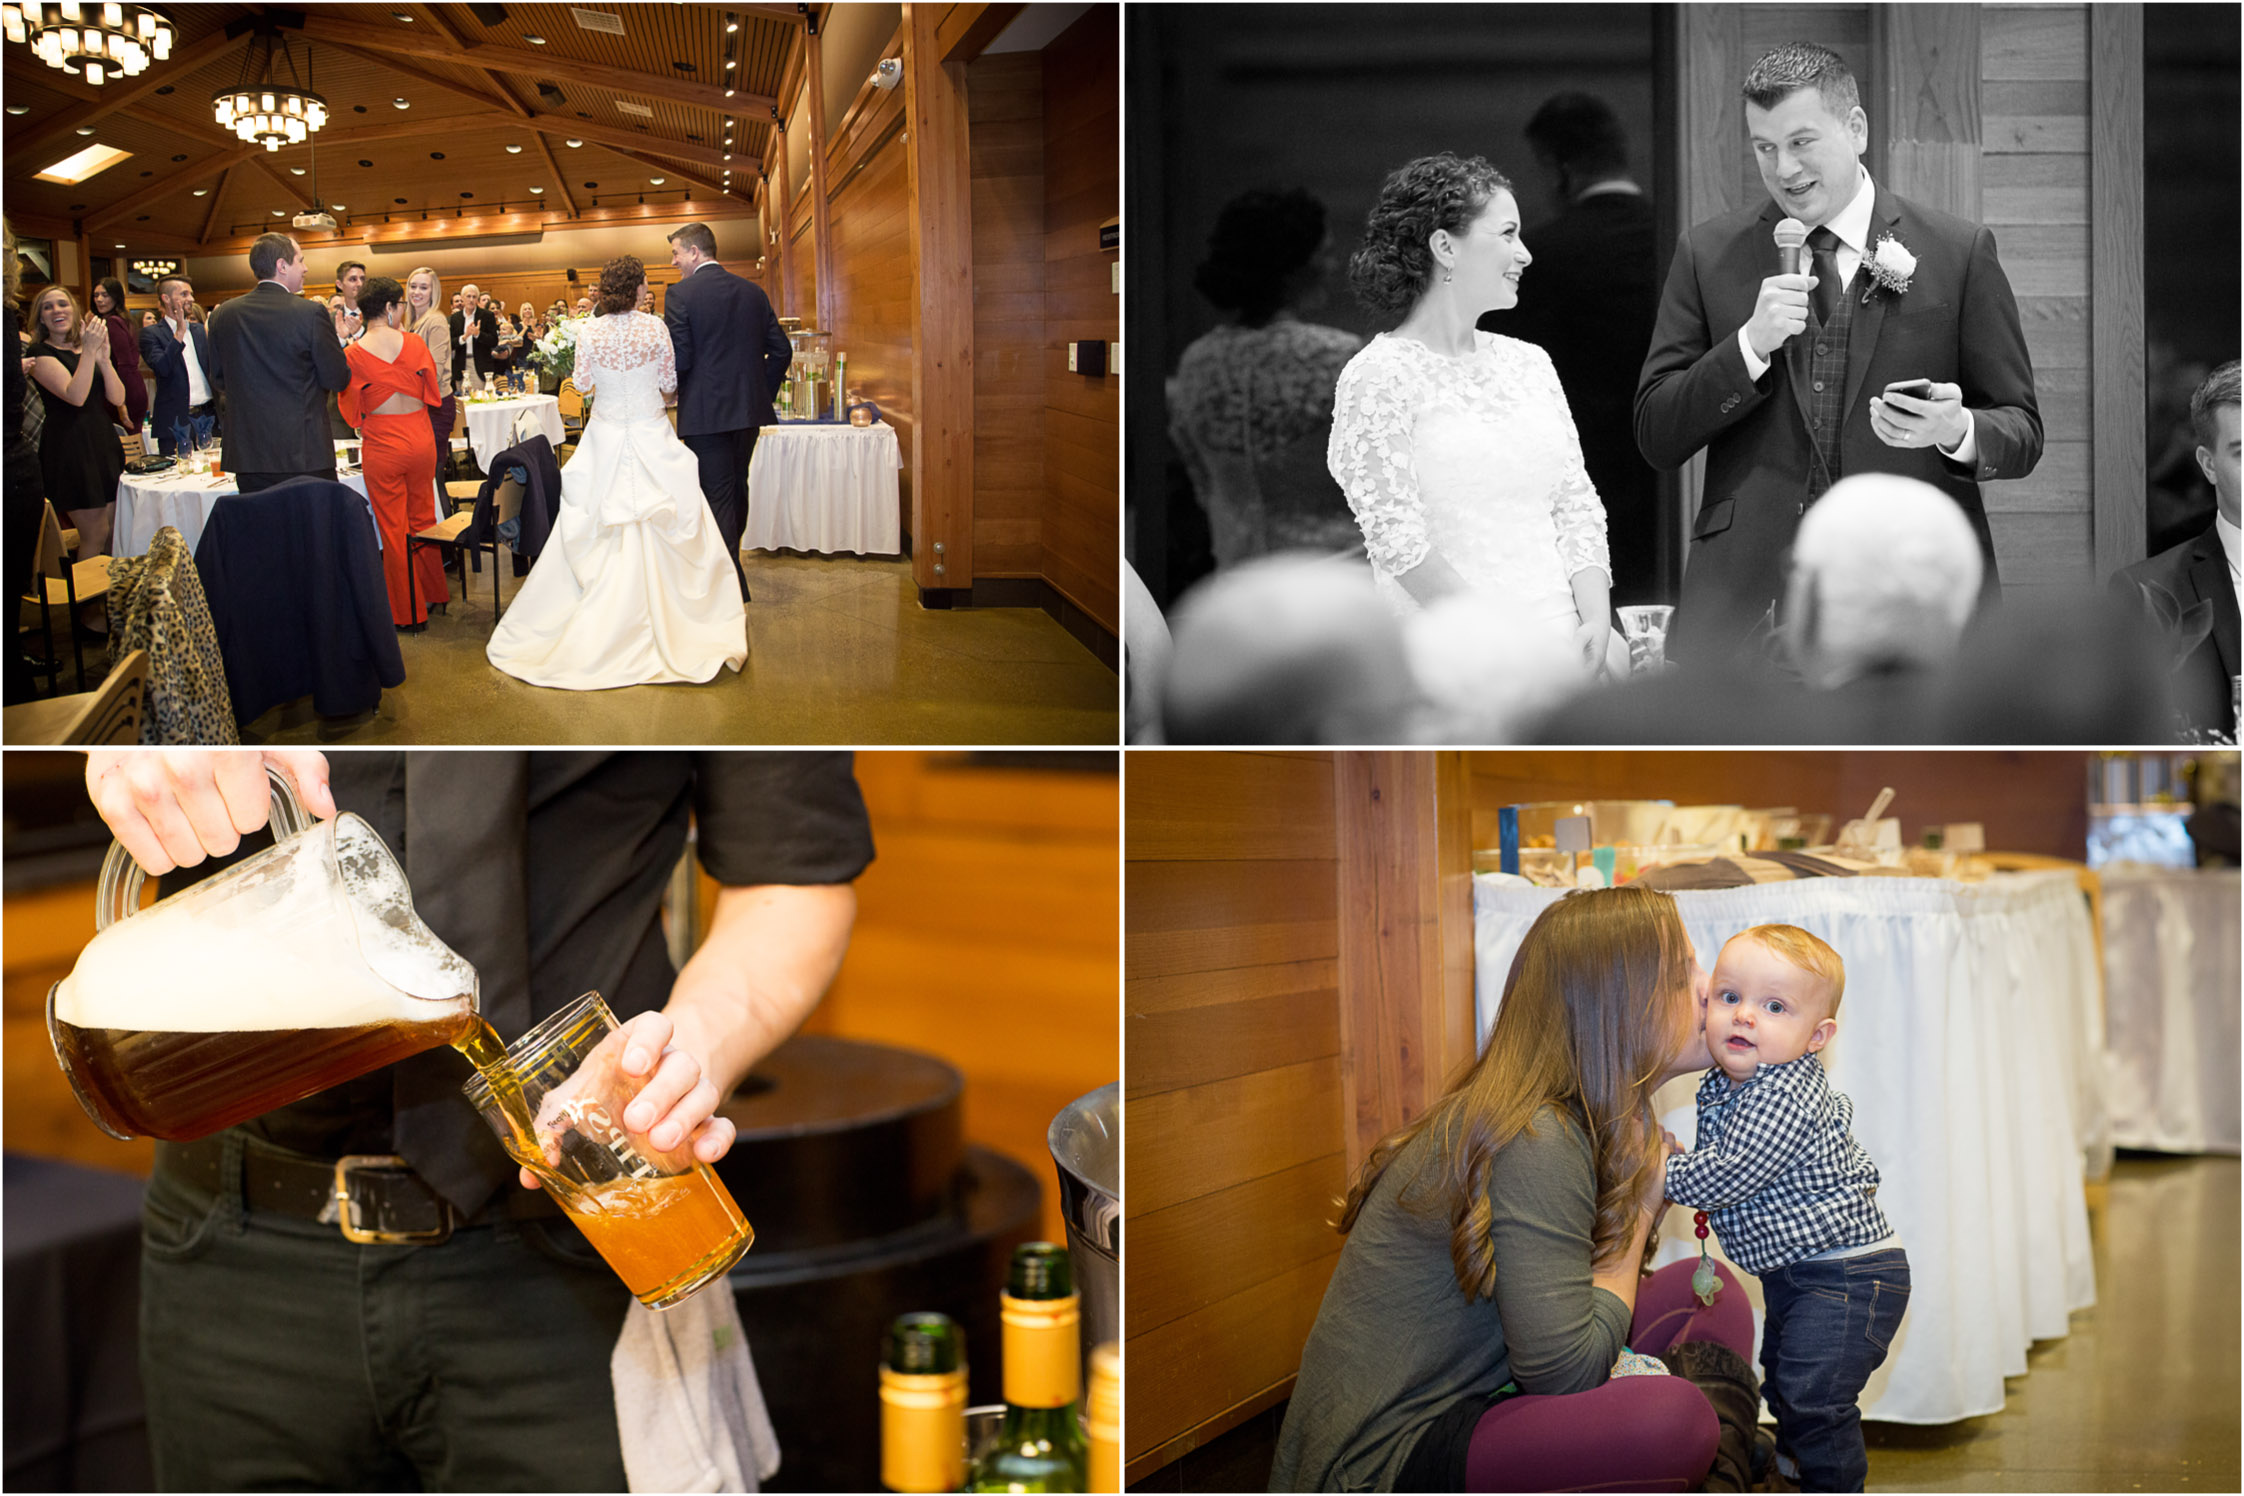 17-three-rivers-park-distric-wedding-receptions-silverwood-great-hall-minnesota-mahonen-photography.jpg